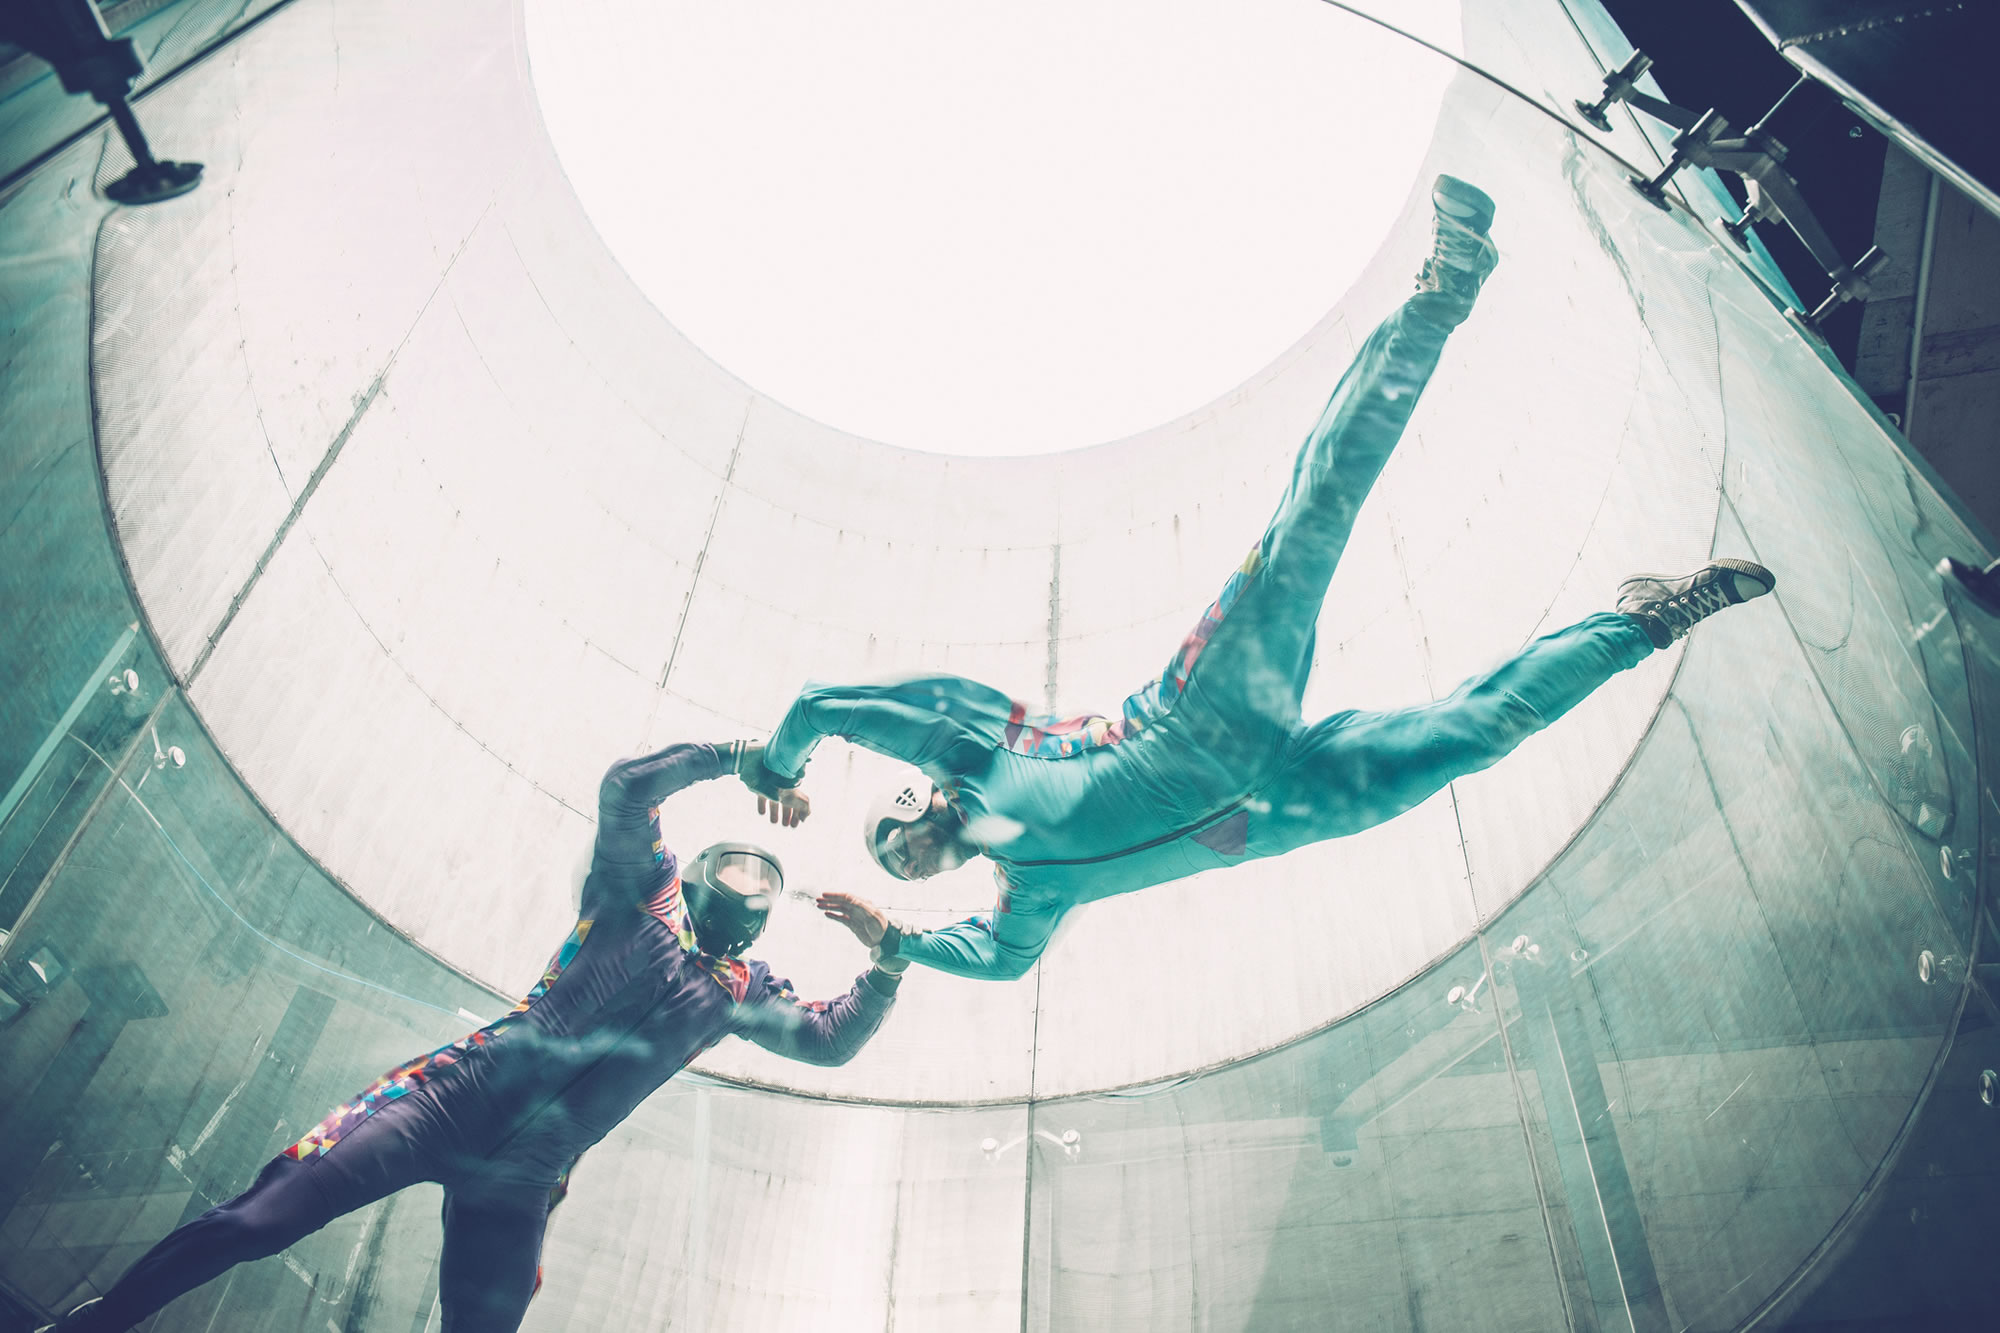 Go on a Weightlessness Experience